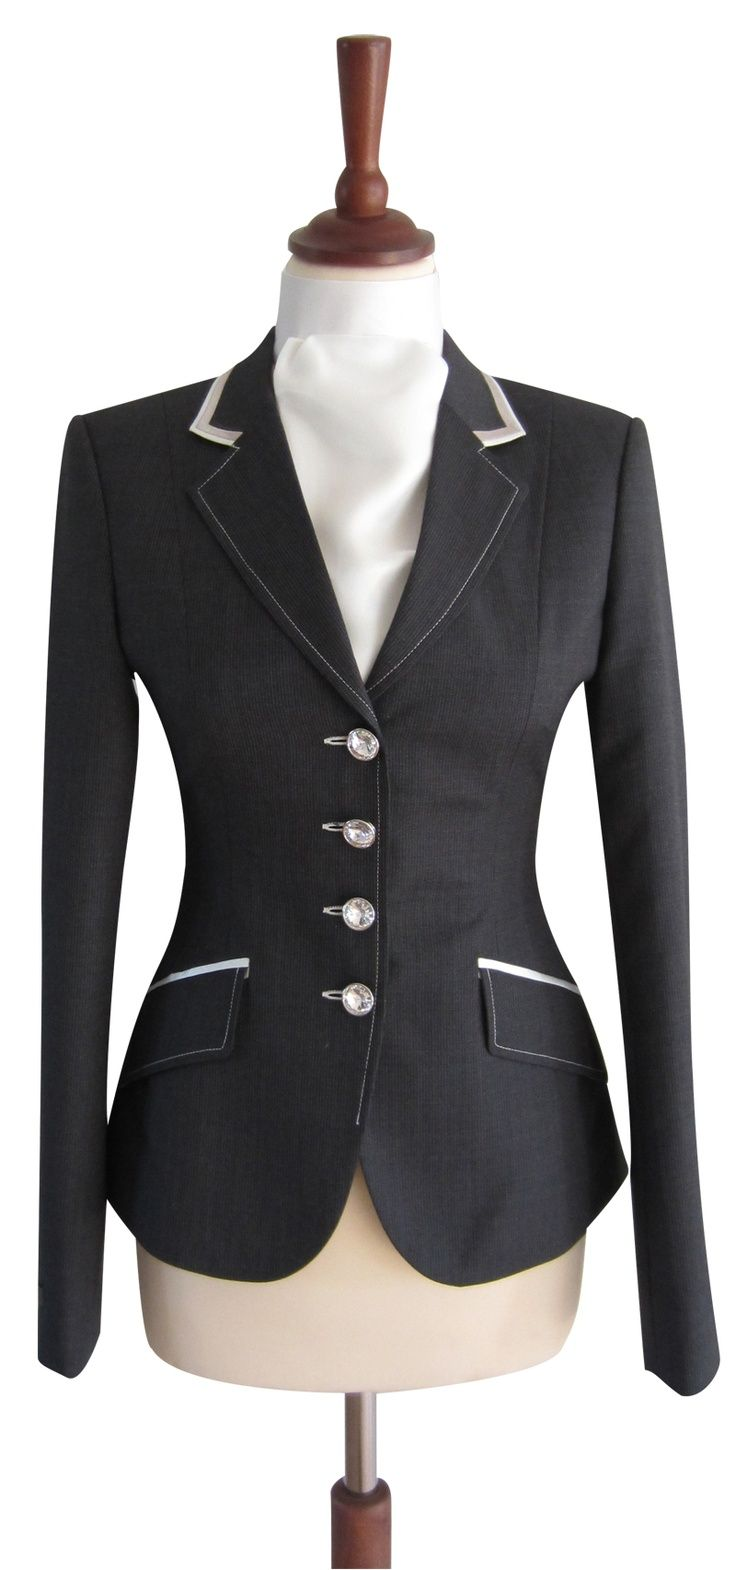 Riding jackets for women